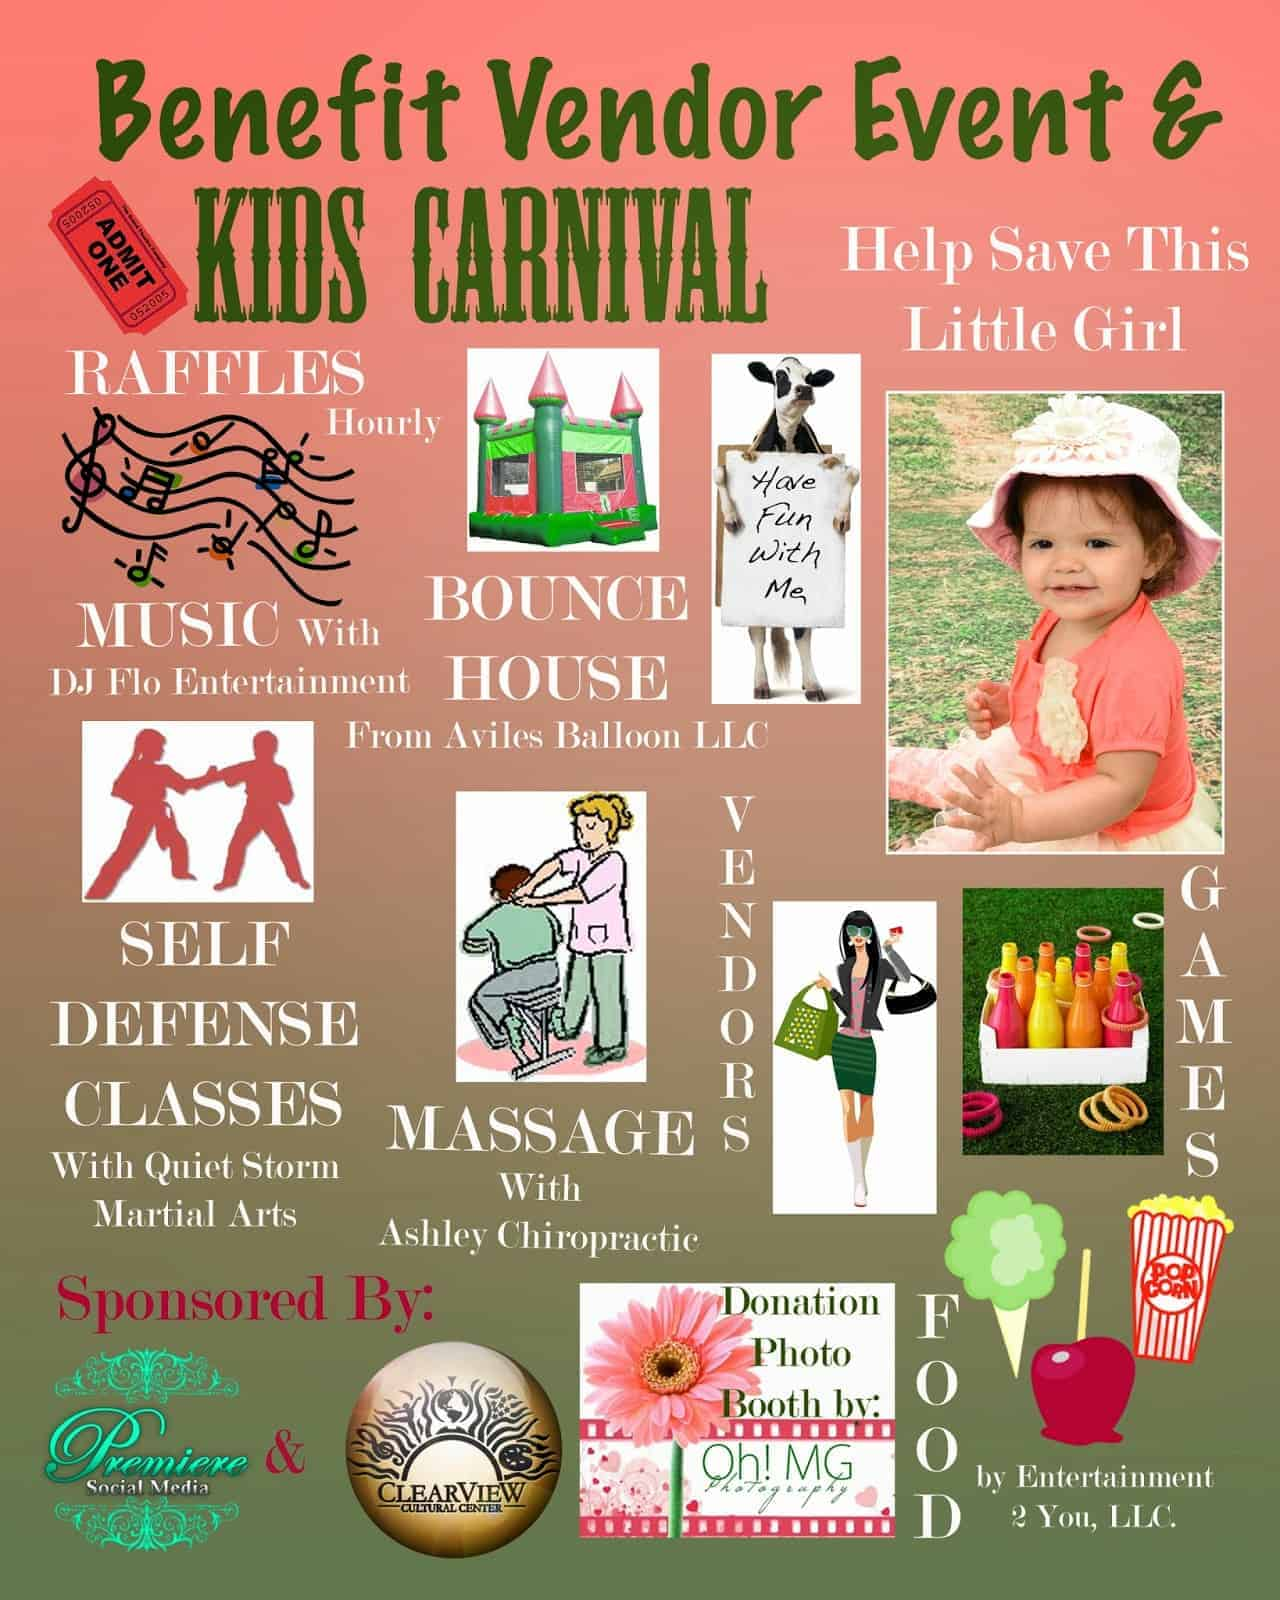 Benefit Business Vendor Event and Kids Carnival- Sponsored by Clearview Cultural Center and Premiere Social Media